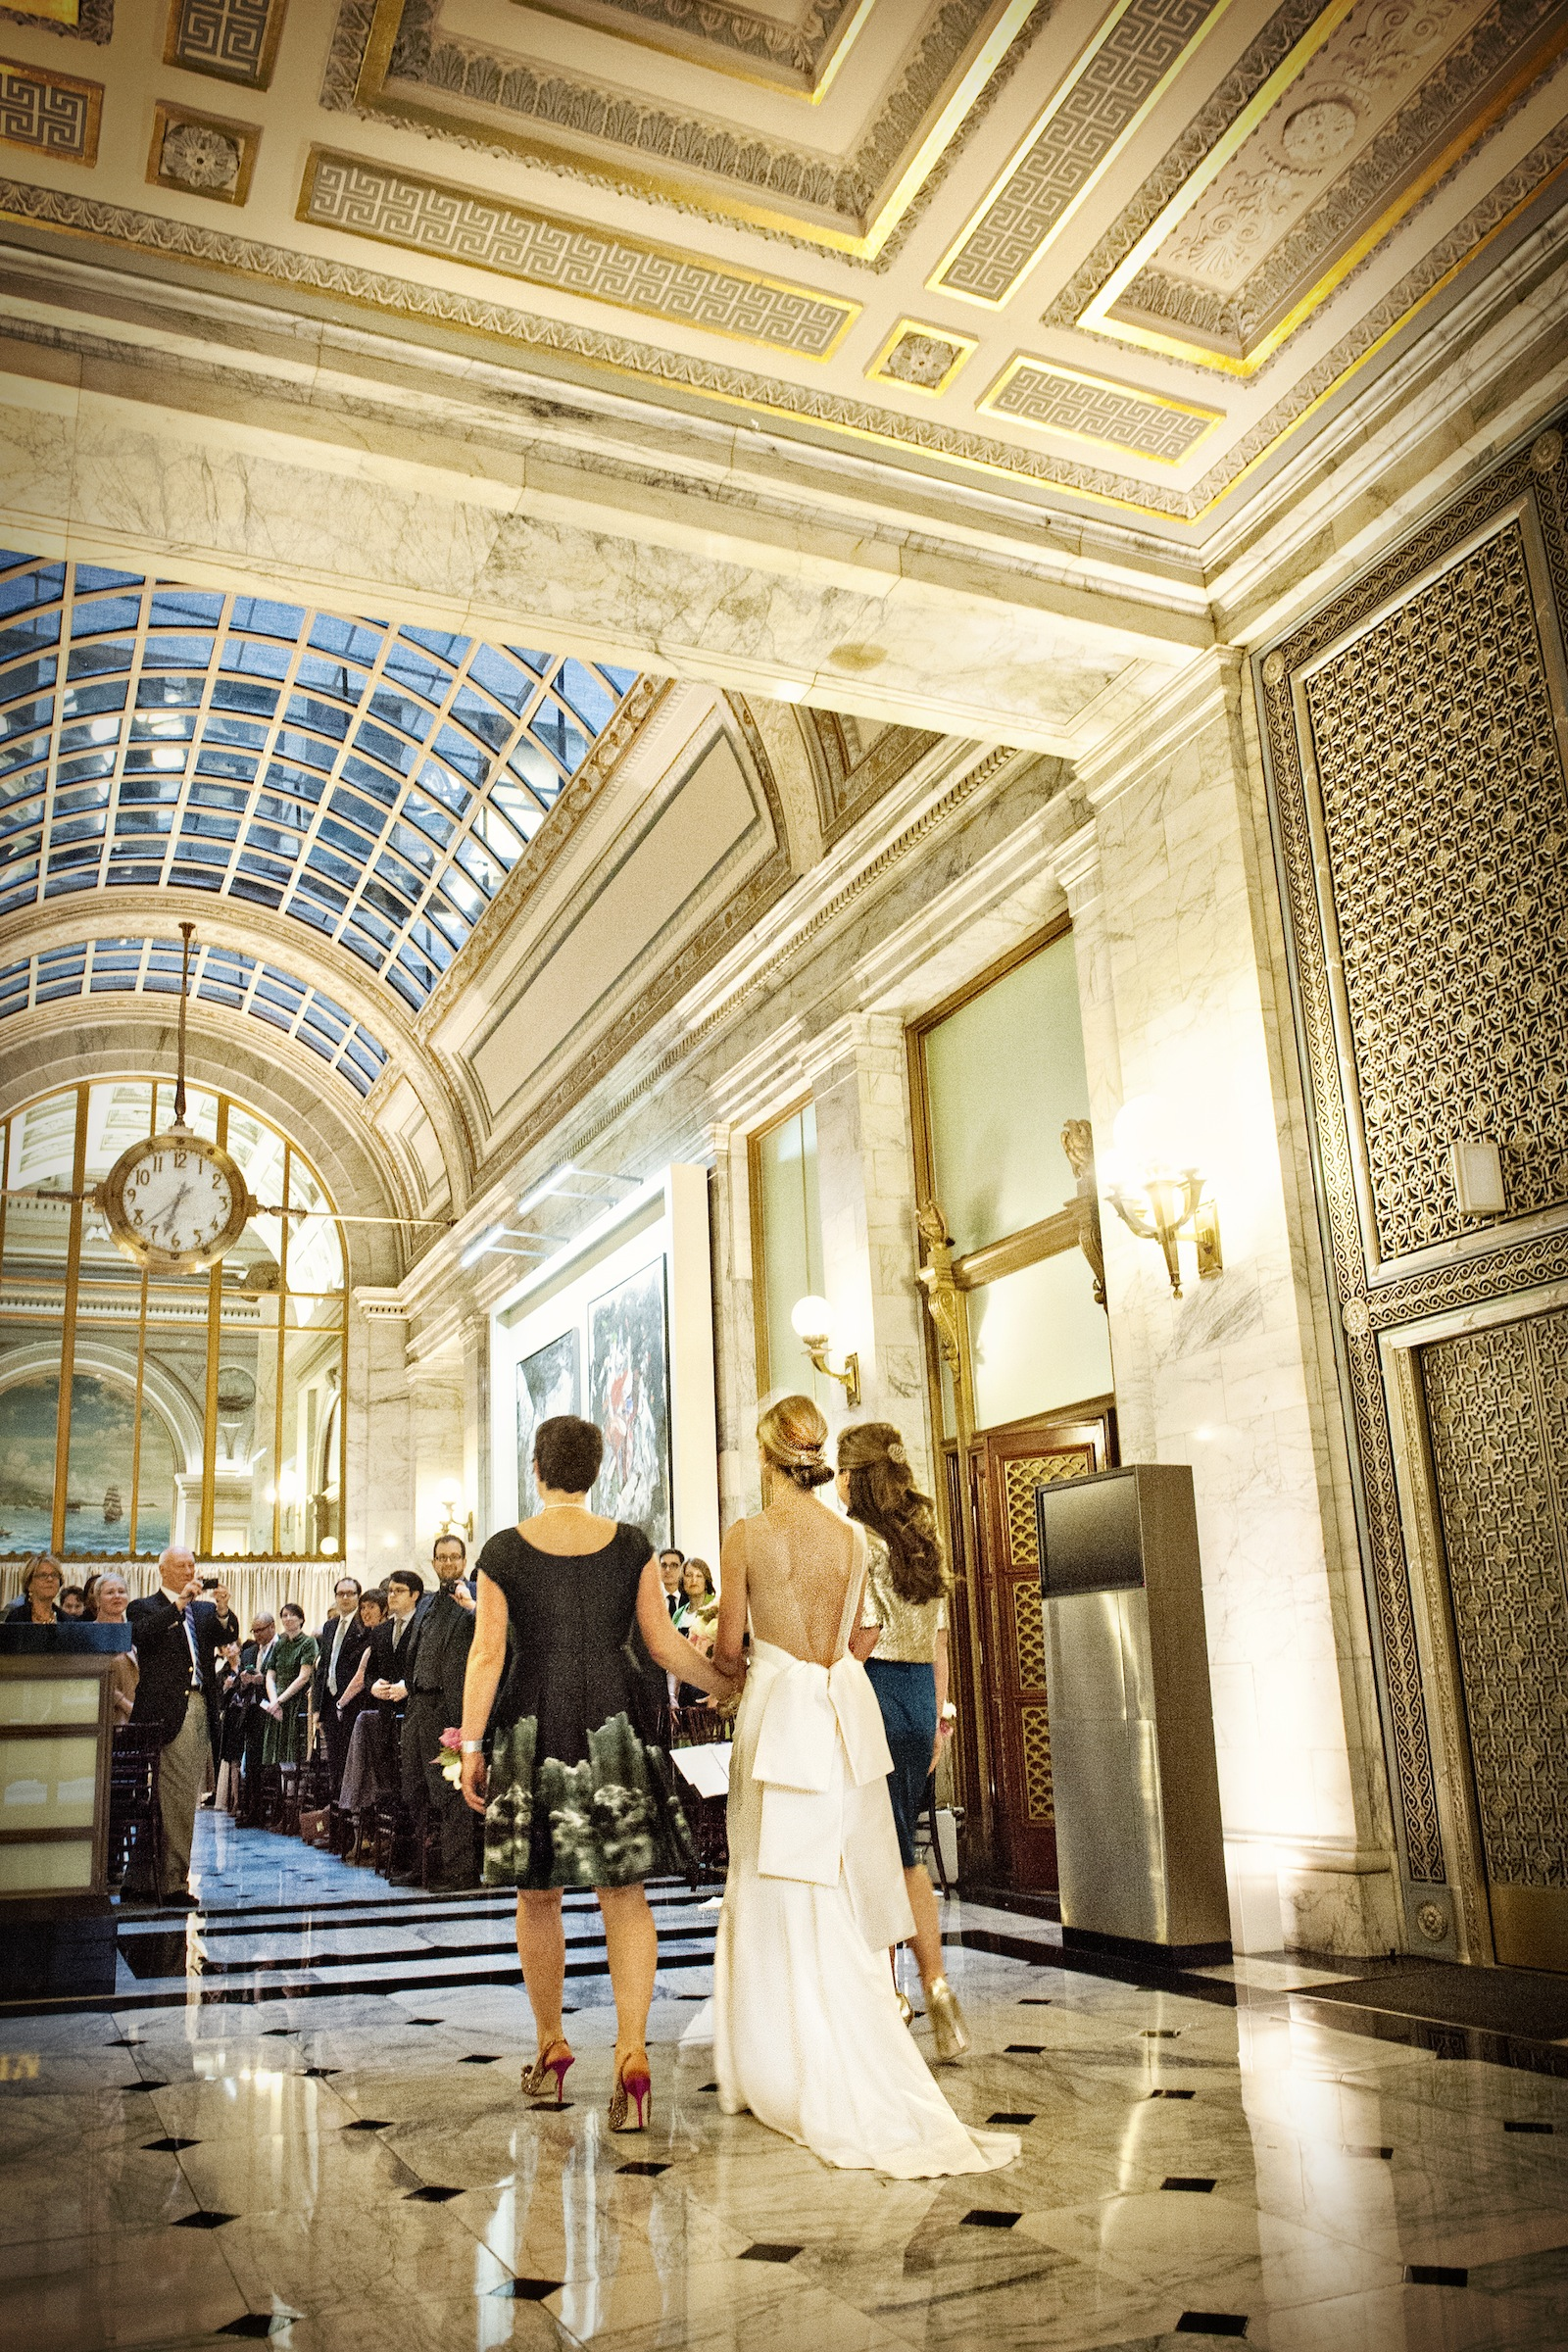 Down the aisle - photo by Jessica Stout